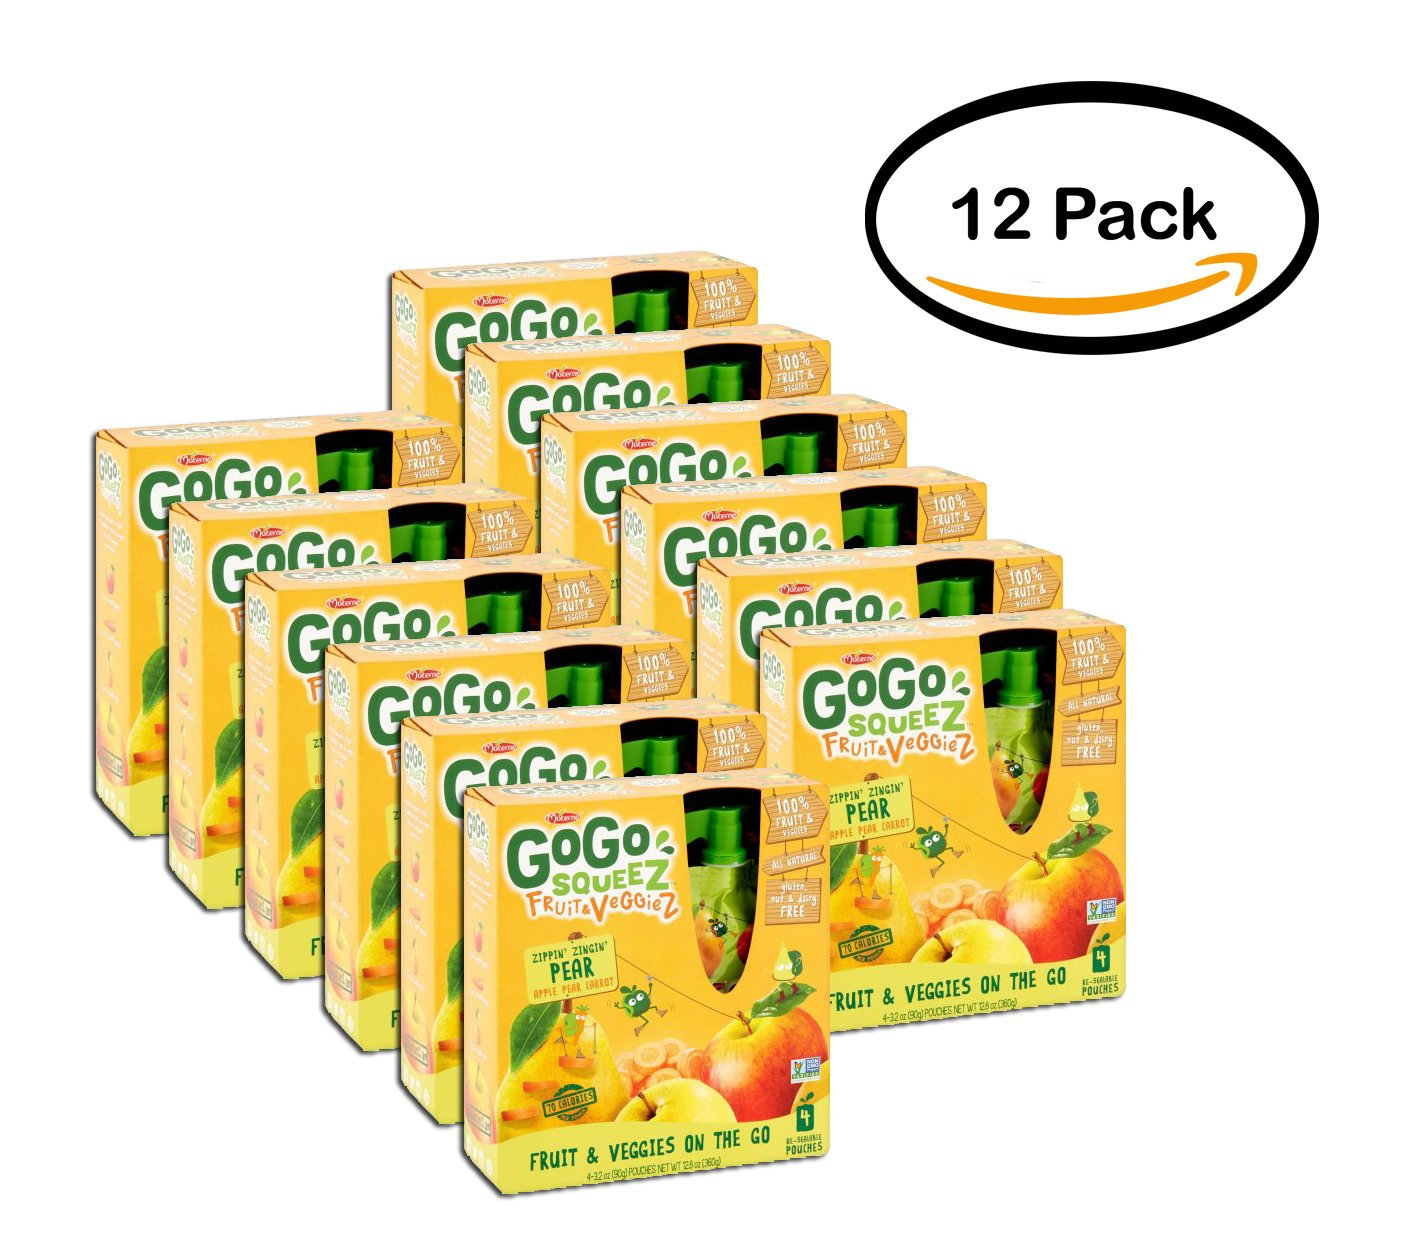 PACK OF 12 - GoGo Squeez Fruit & Veggiez On The Go Apple Pear Carrot - 4 CT by Materne (Image #1)